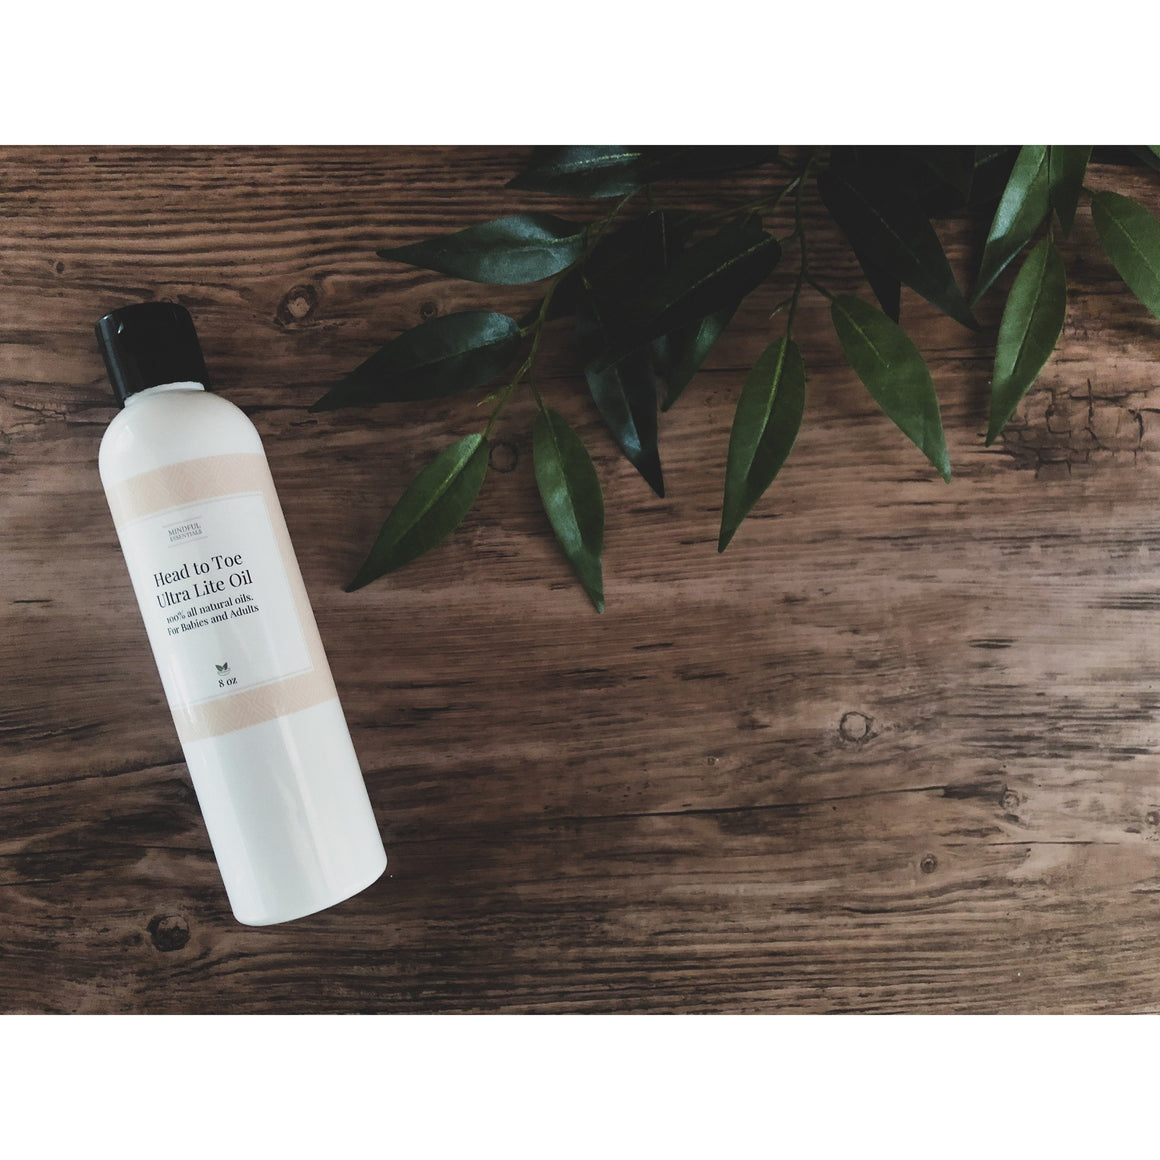 Head to Toe oil - Essence Marché